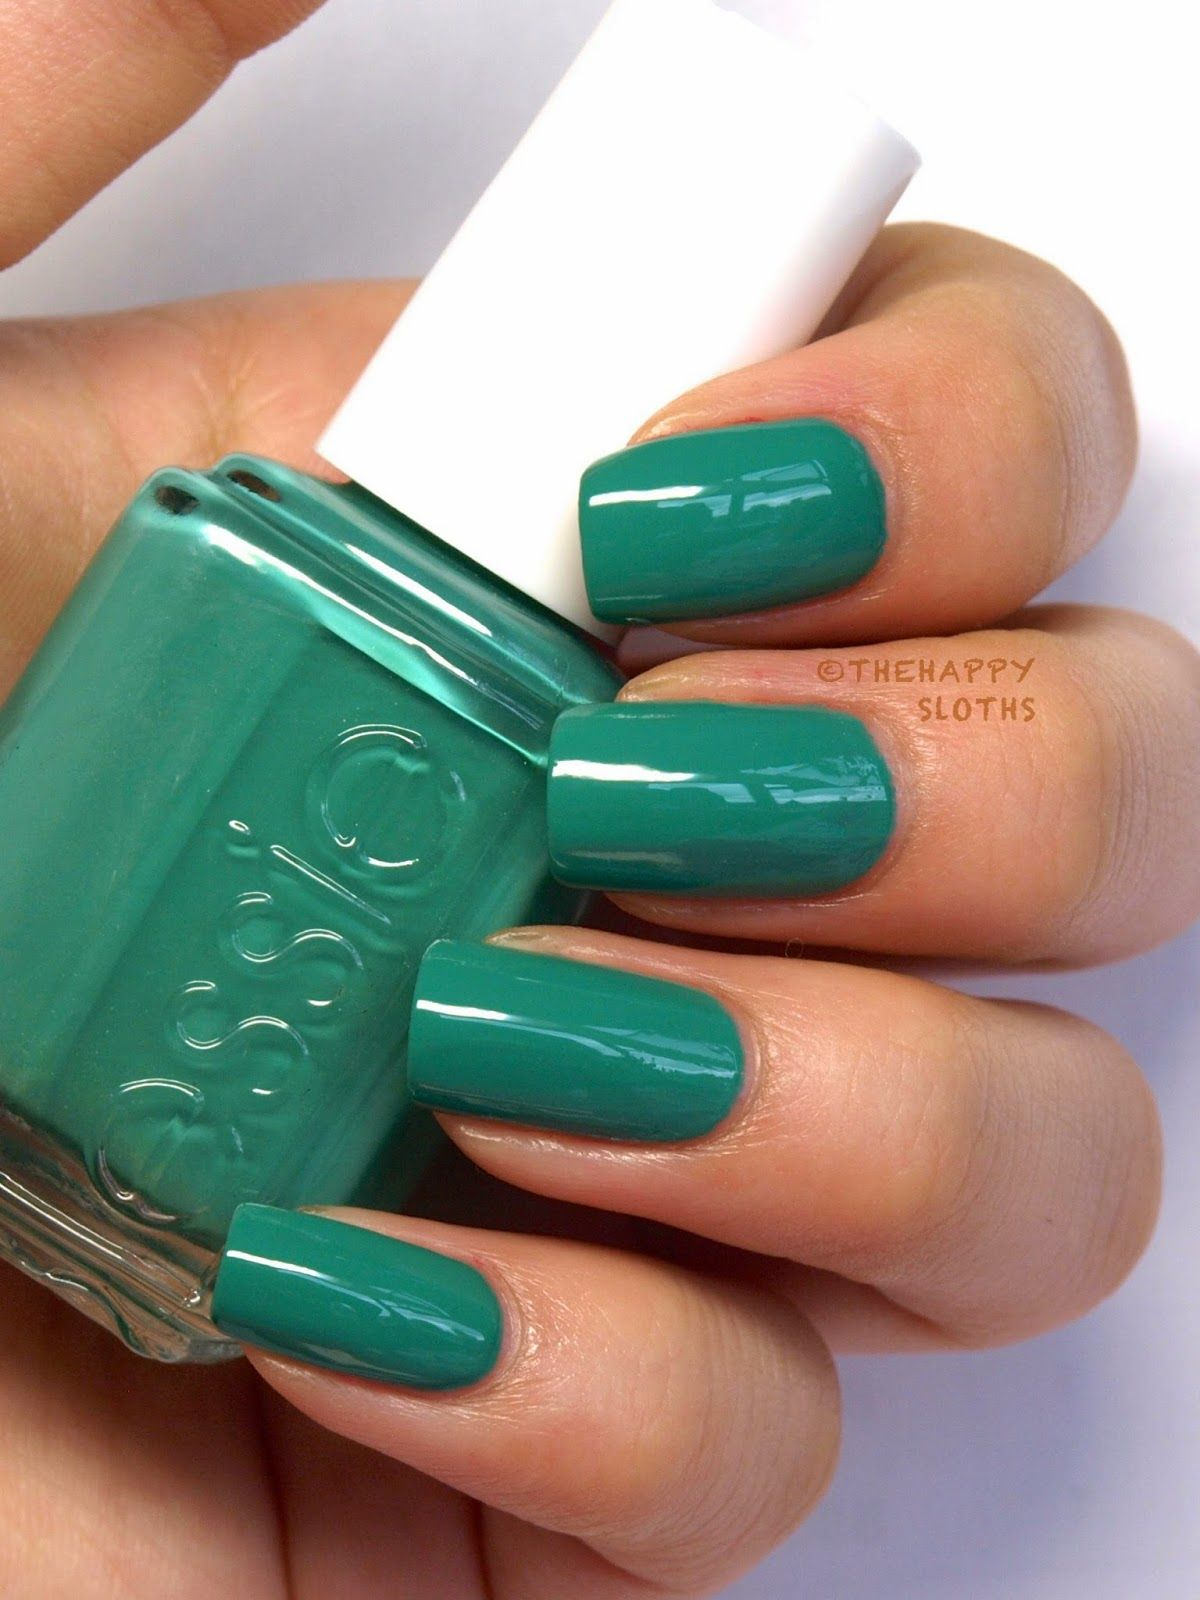 Essie Summer 2014 Nail Polish Collection: Review and Swatches | Nail ...